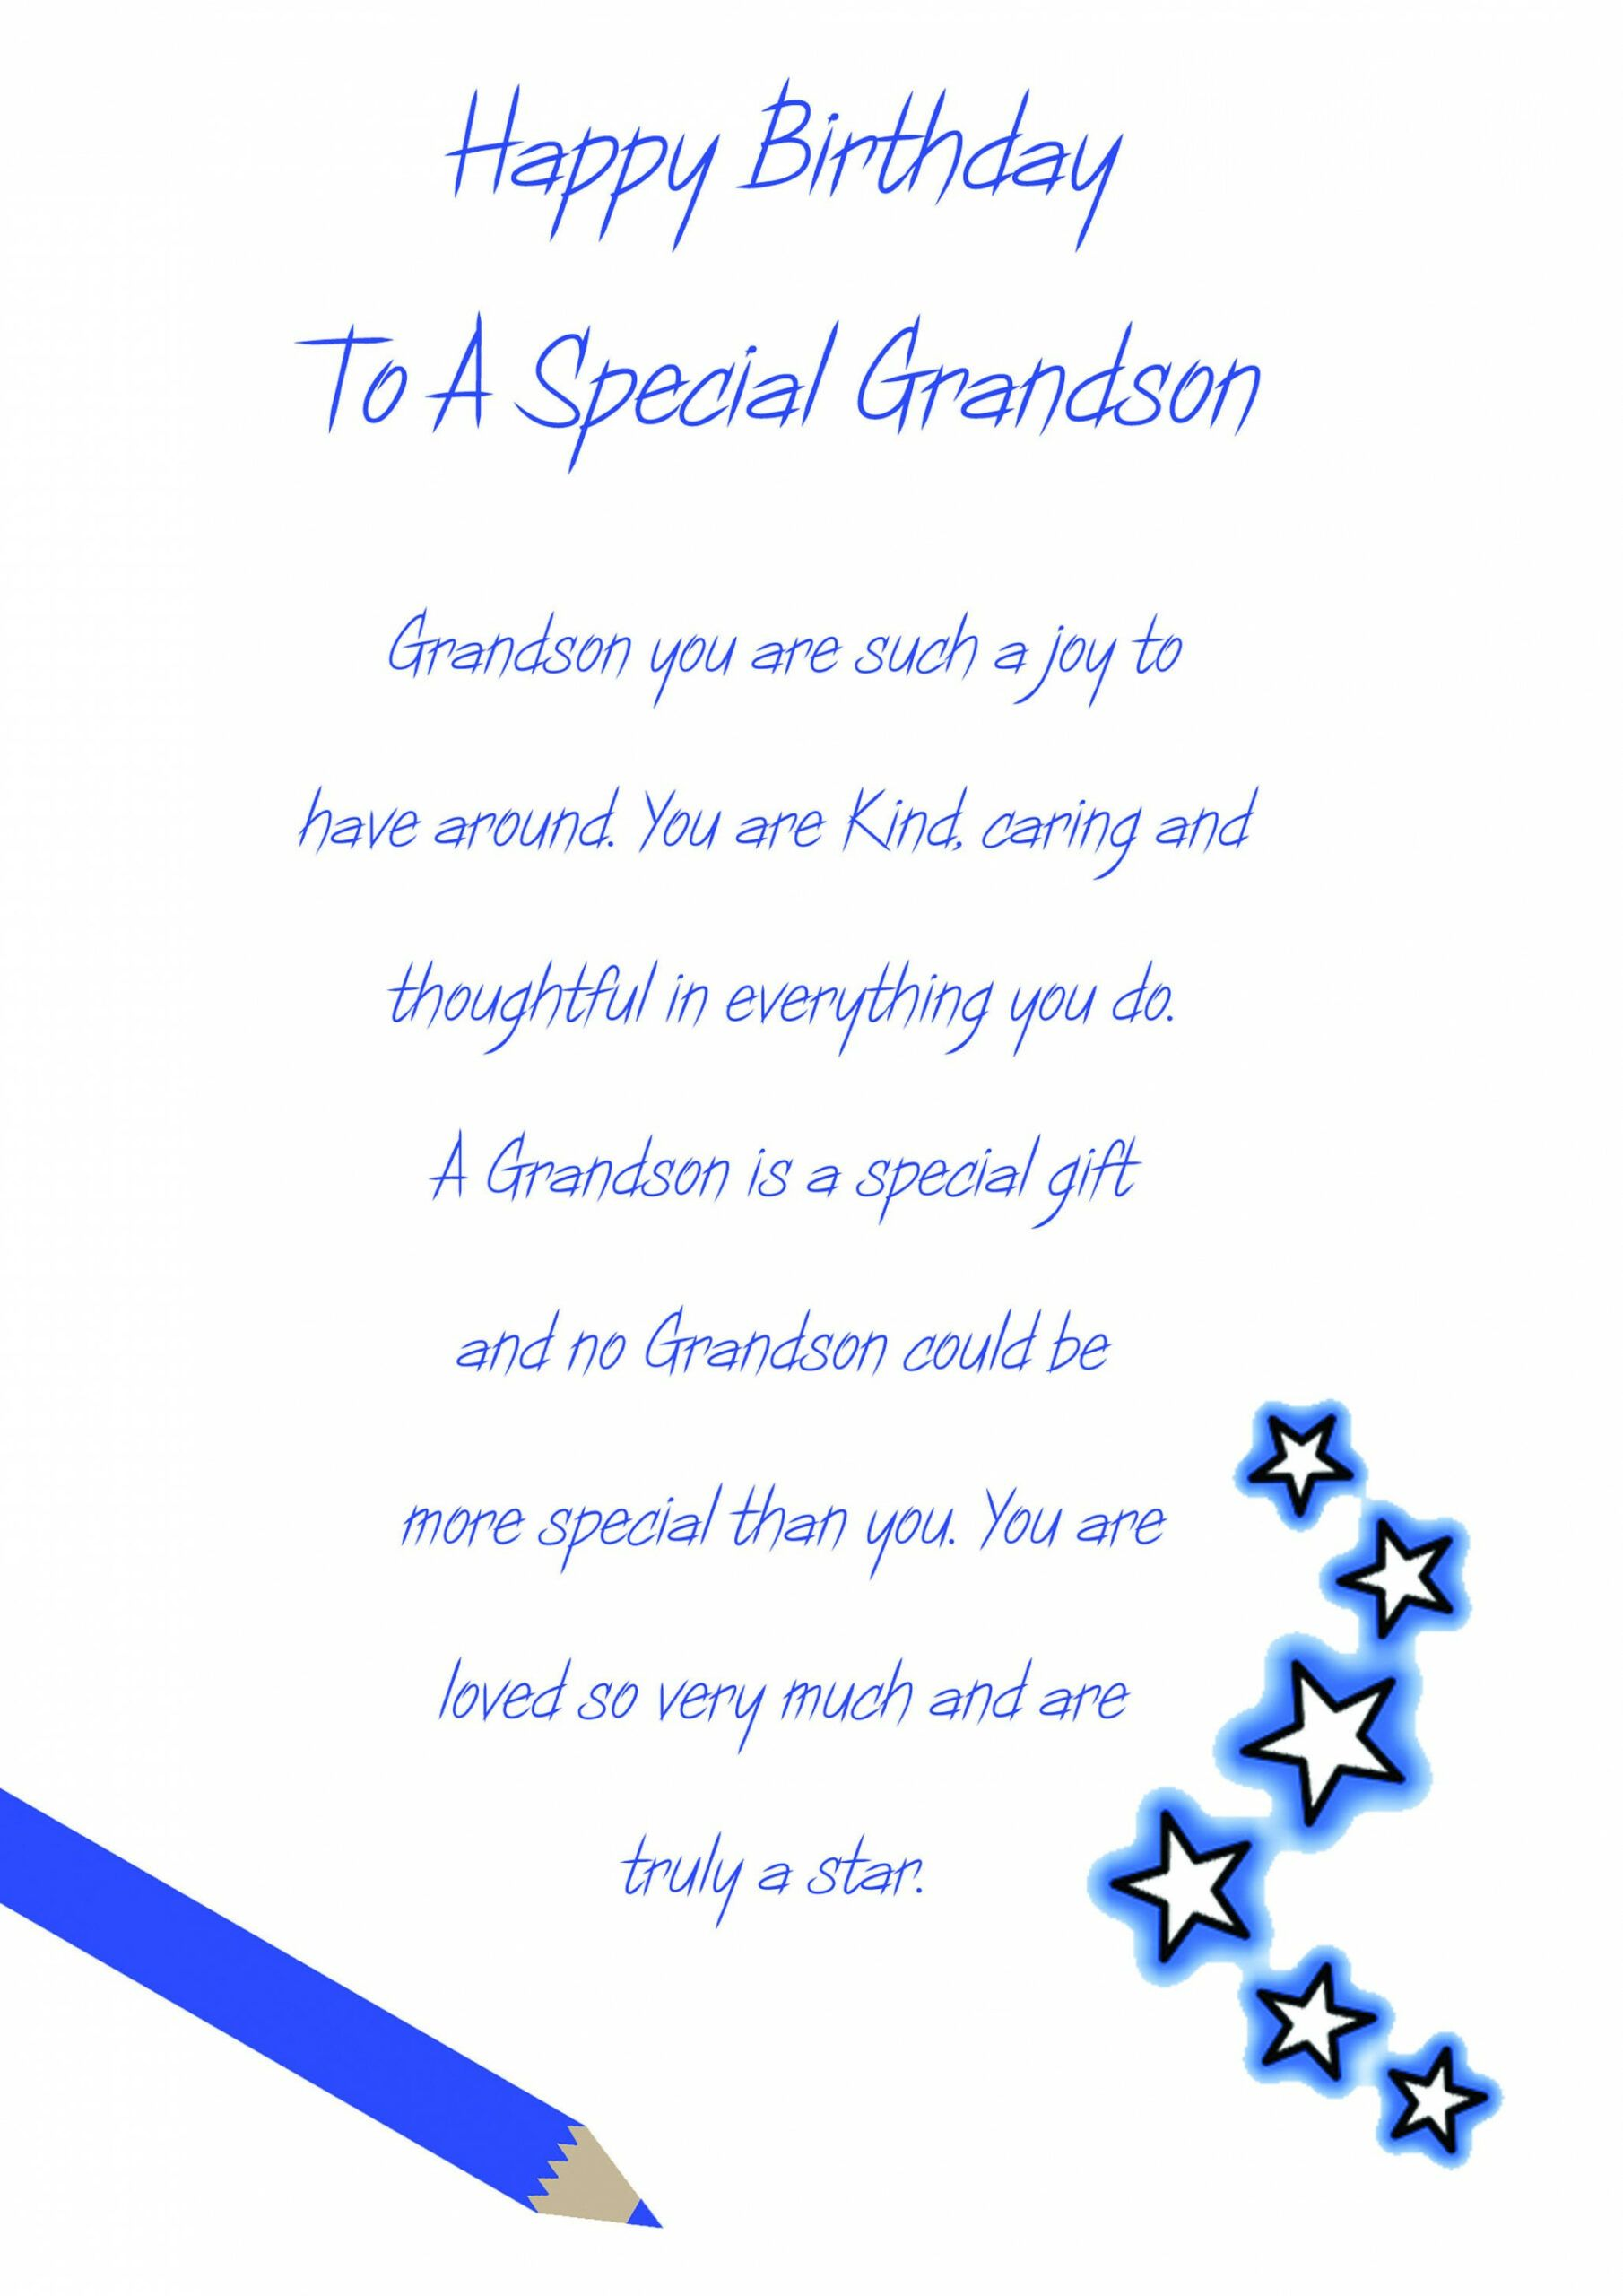 16 Custom Birthday Card Verses For Grandson Birthday Verses For Cards Birthday Verses Grandson Birthday Wishes